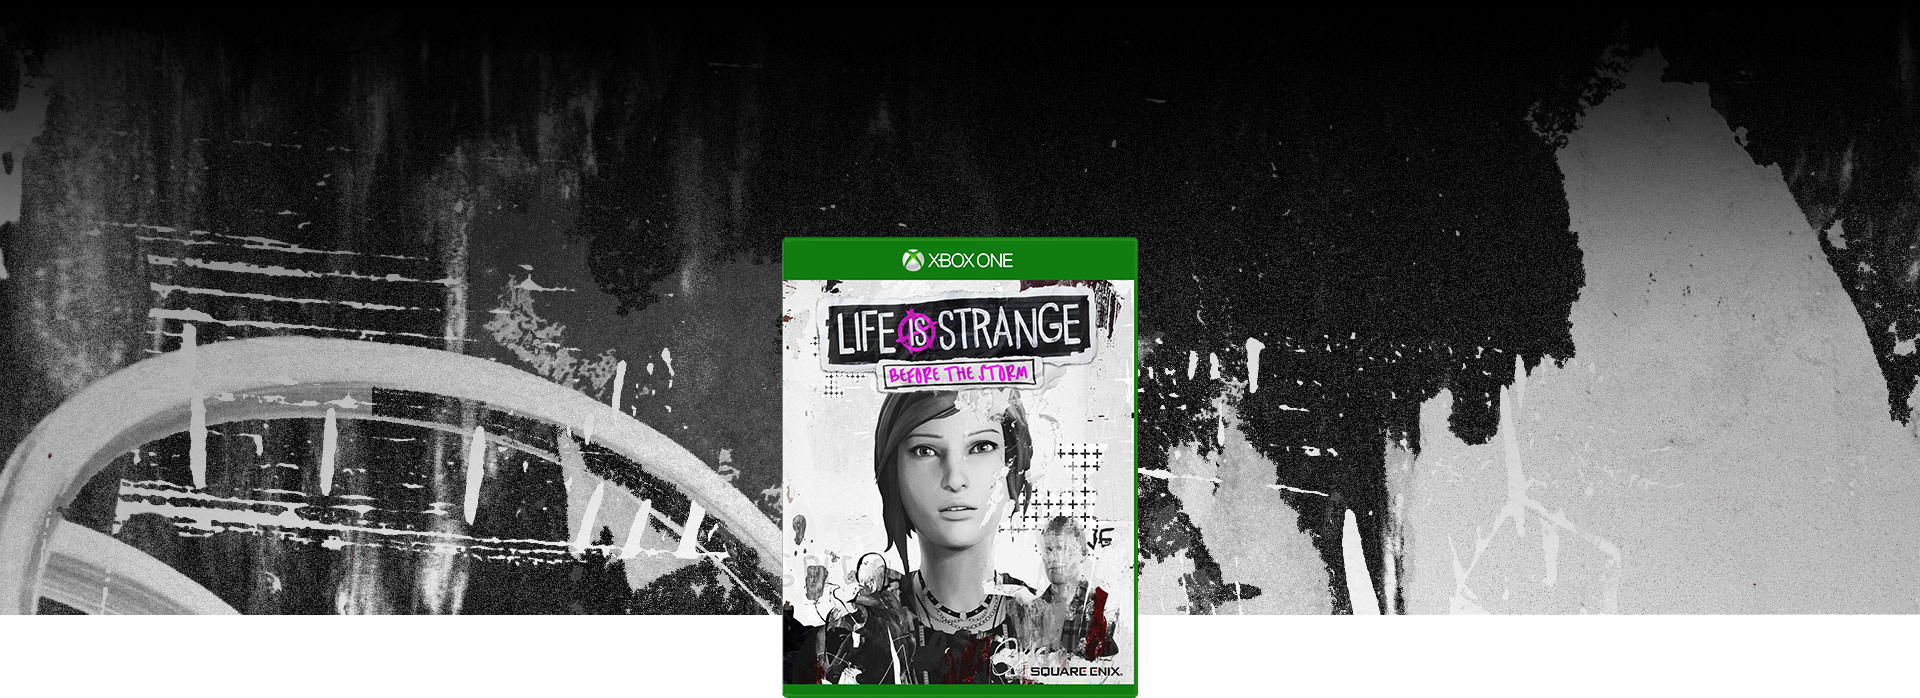 Life is Strange Before the Storm kutu resmi. Arka planda karalanmış kolaj